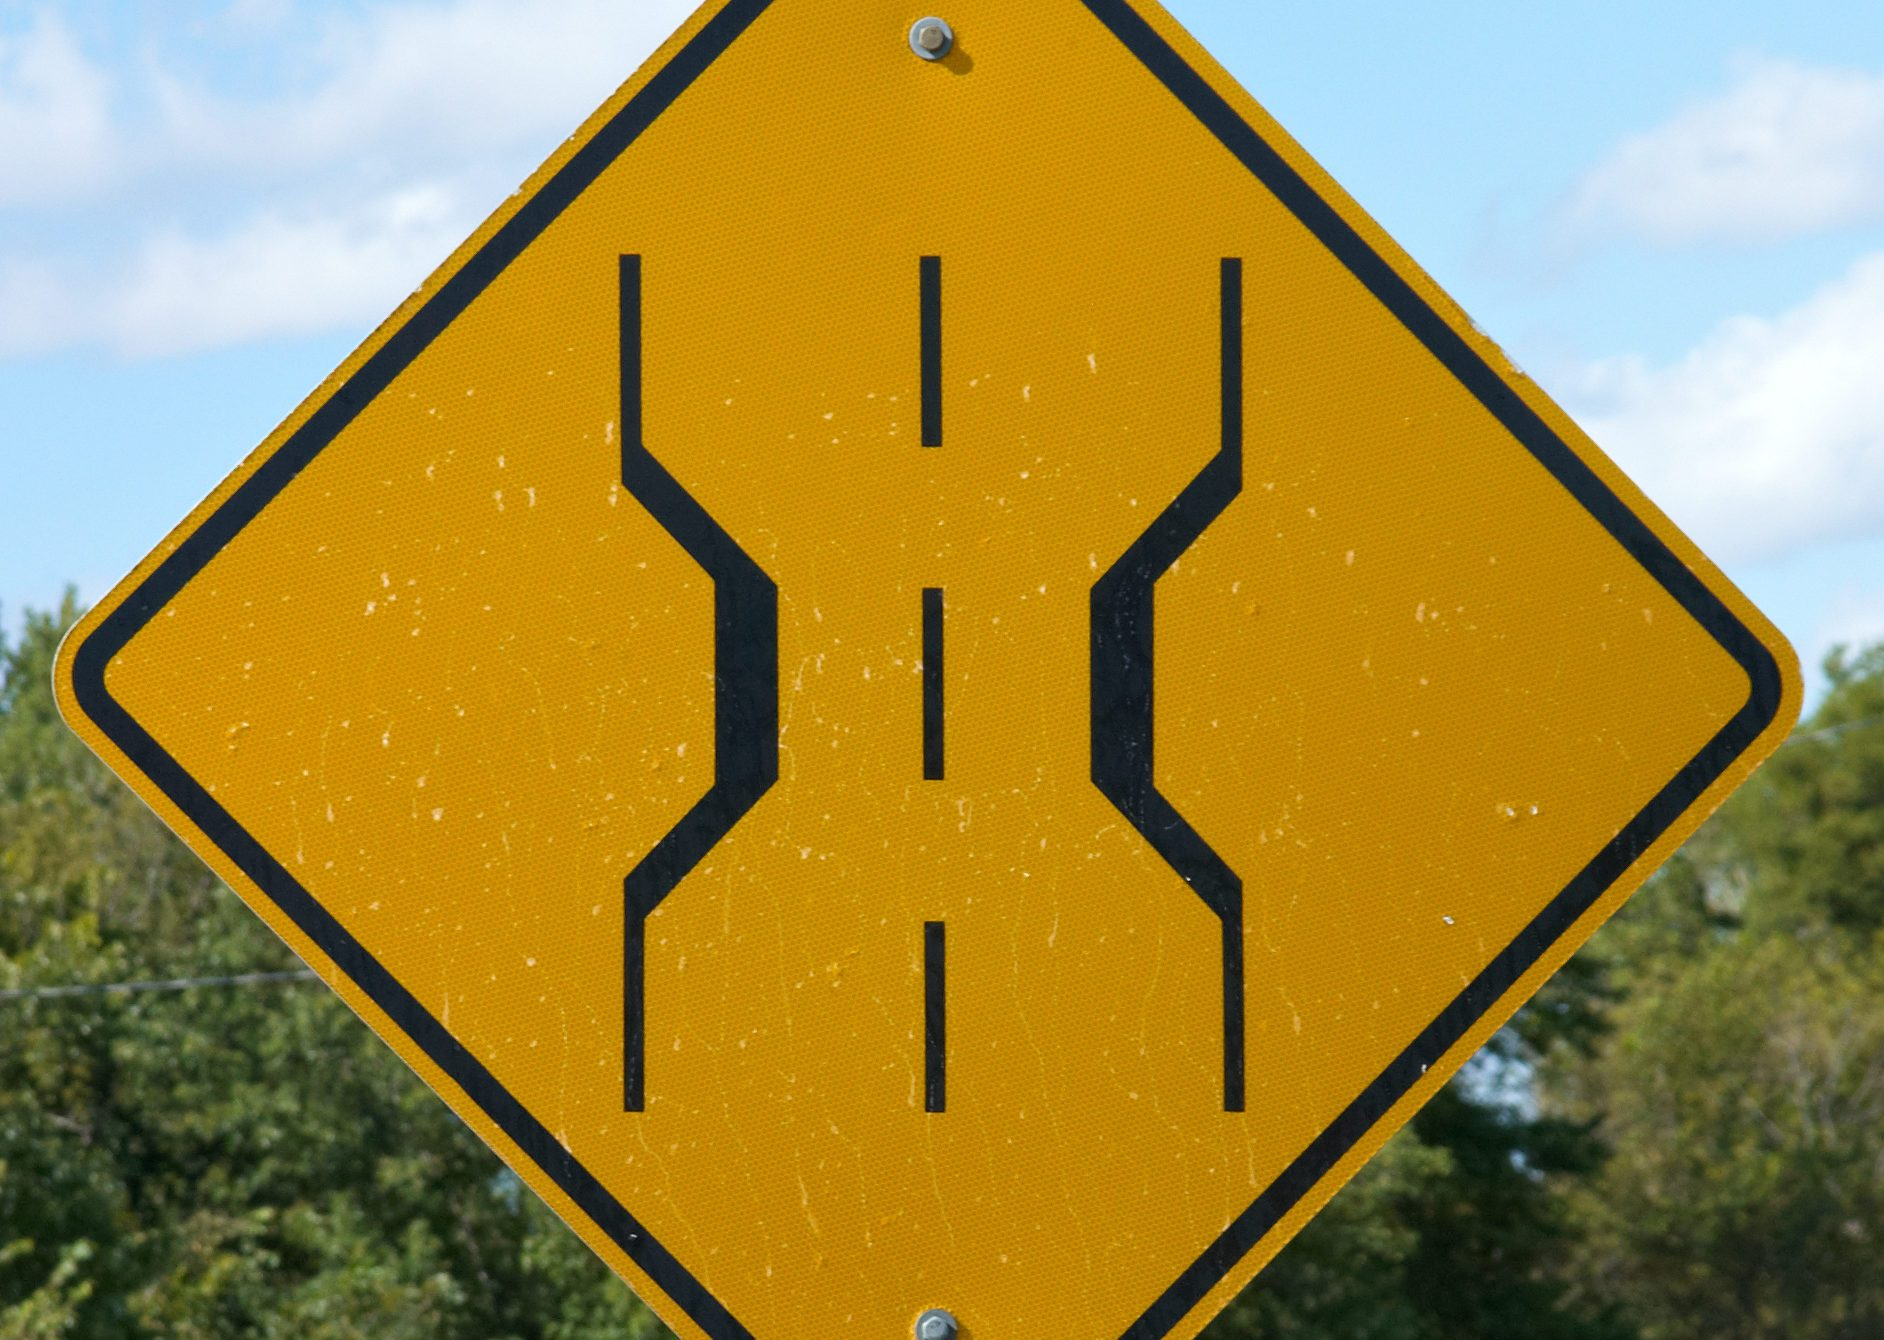 8 Confusing Road Signs That Even Driving School Instructors Get Wrong